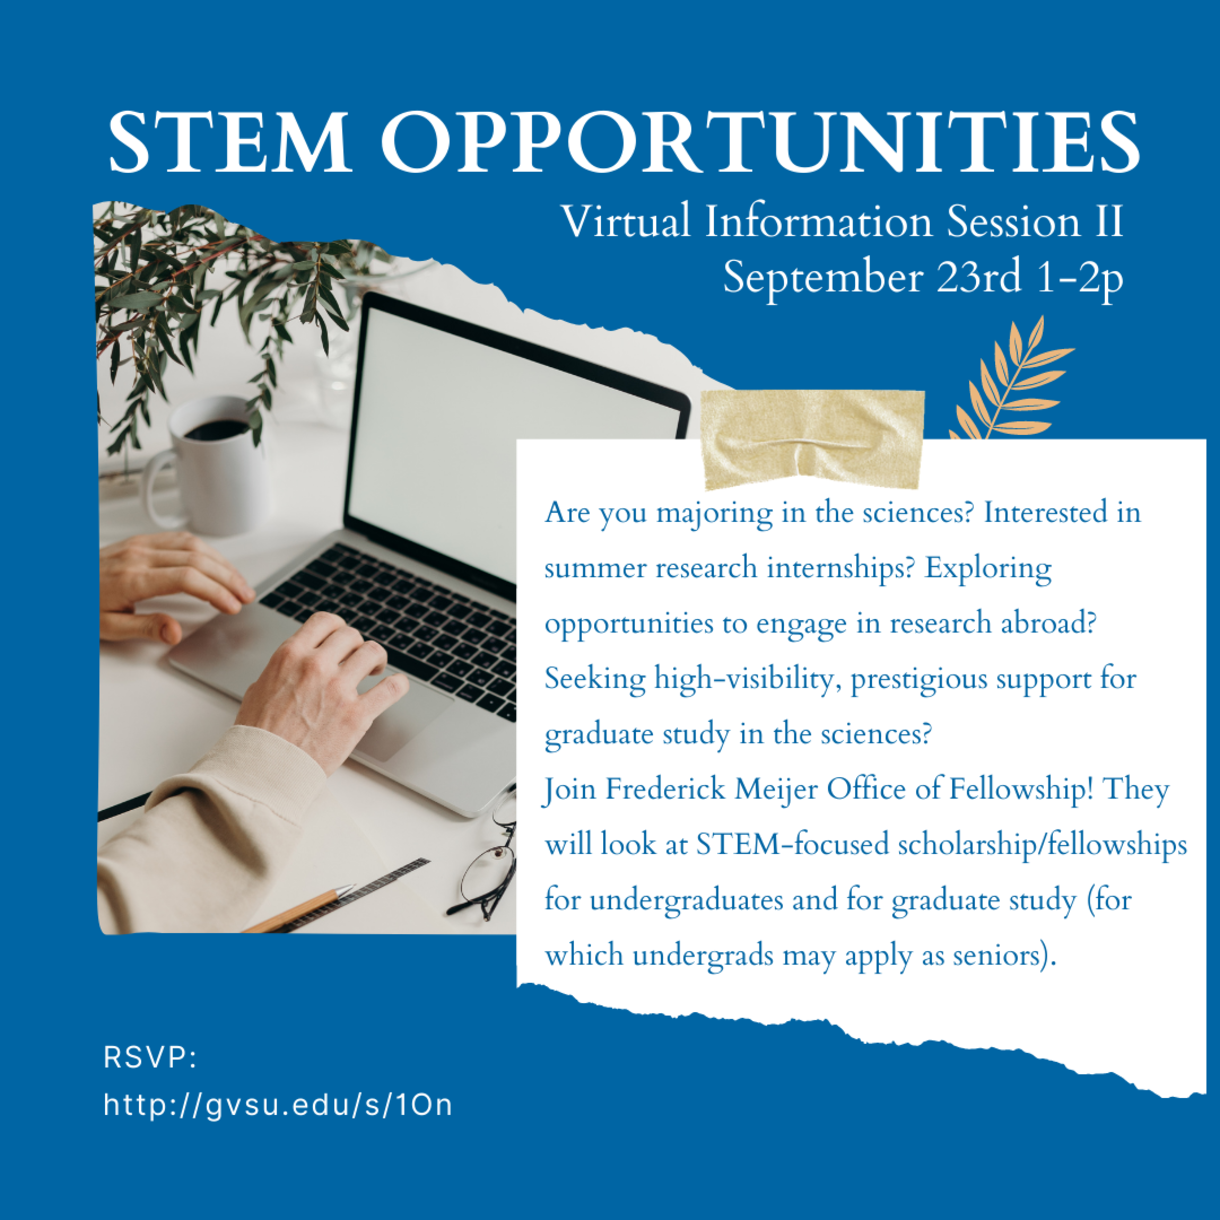 STEM Opportunities Virtual Information Session 2 on September 23rd from 1 to 2p